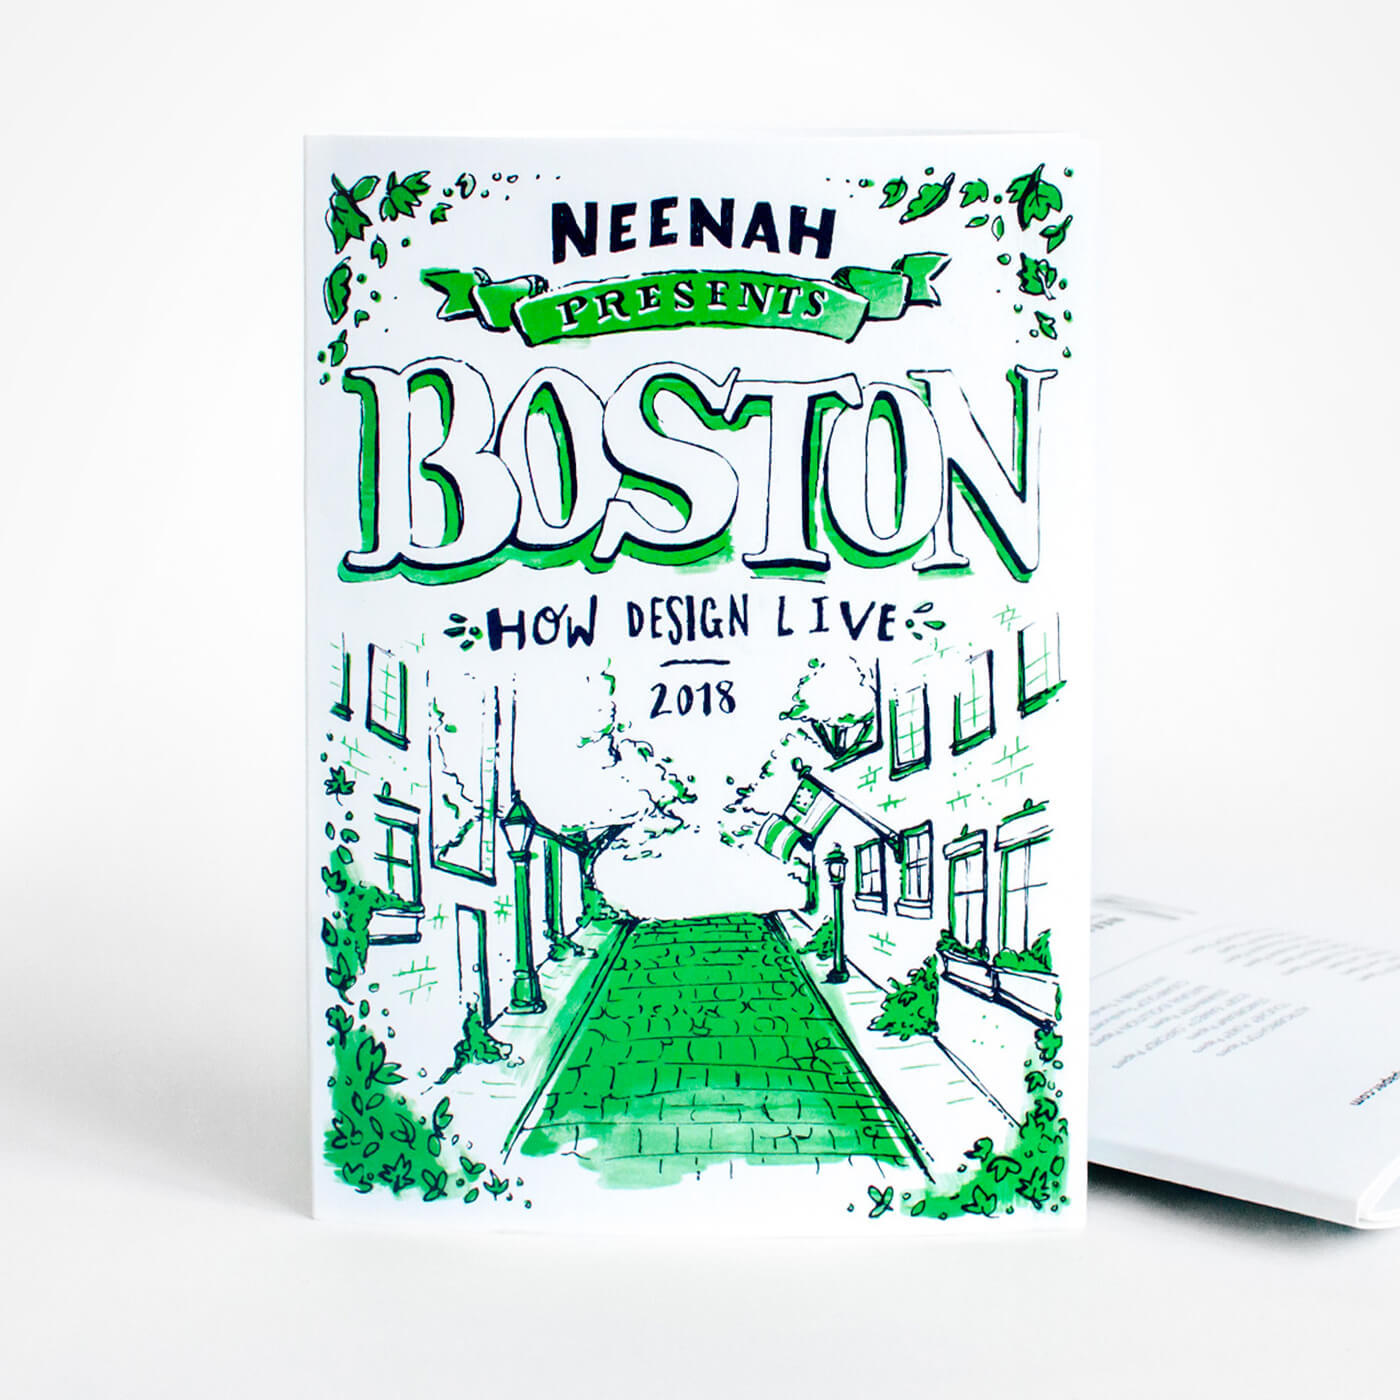 Neenah Presents Boston - An illustrated guide of the Hub of the Universe, featuring a full map of Boston and illustrations of its history of architecture, culture, and design.